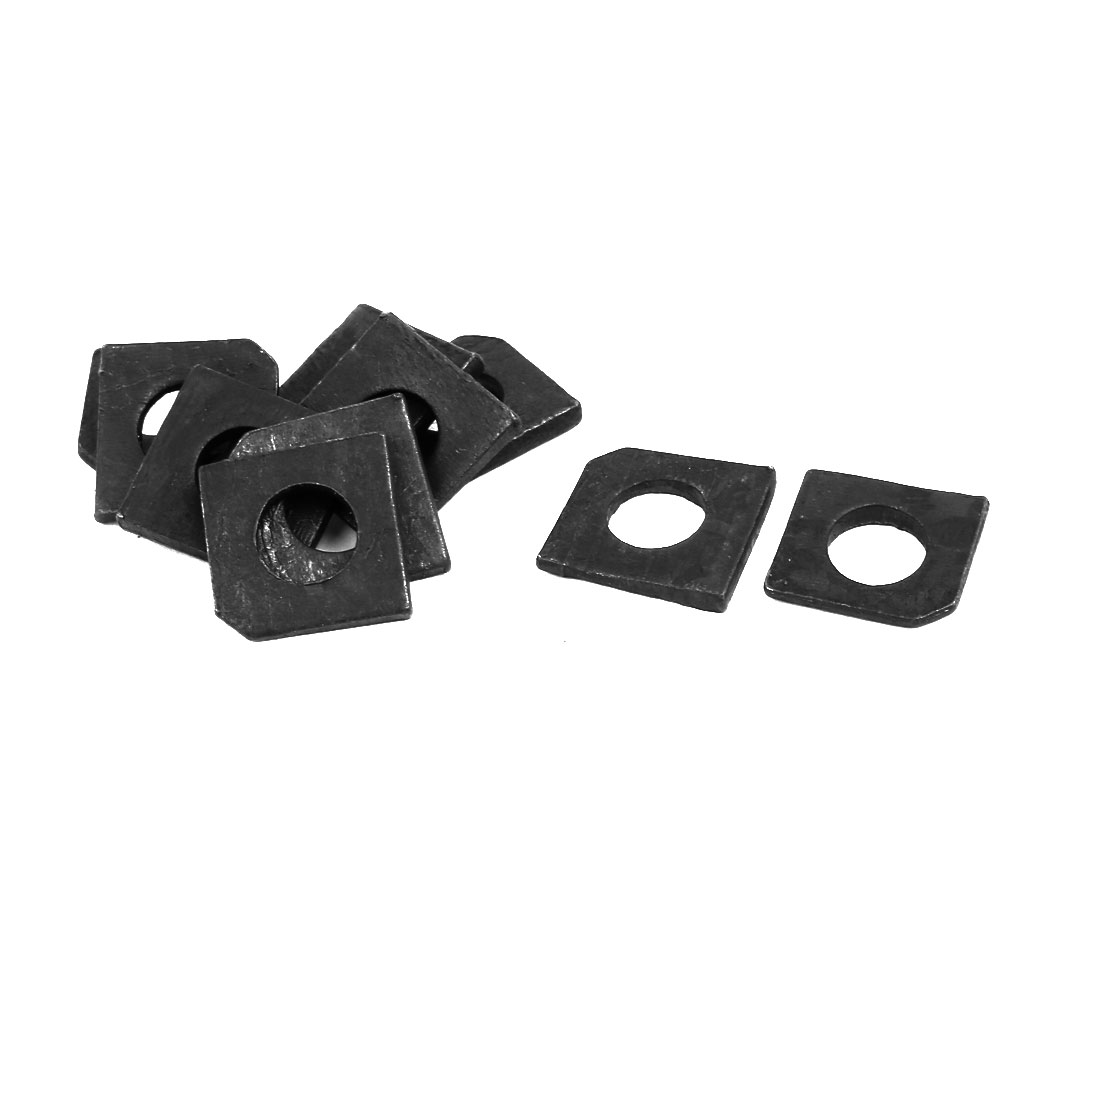 10mm Fitting Dia Carbon Steel Slot Section Square Bevel Washer 10pcs